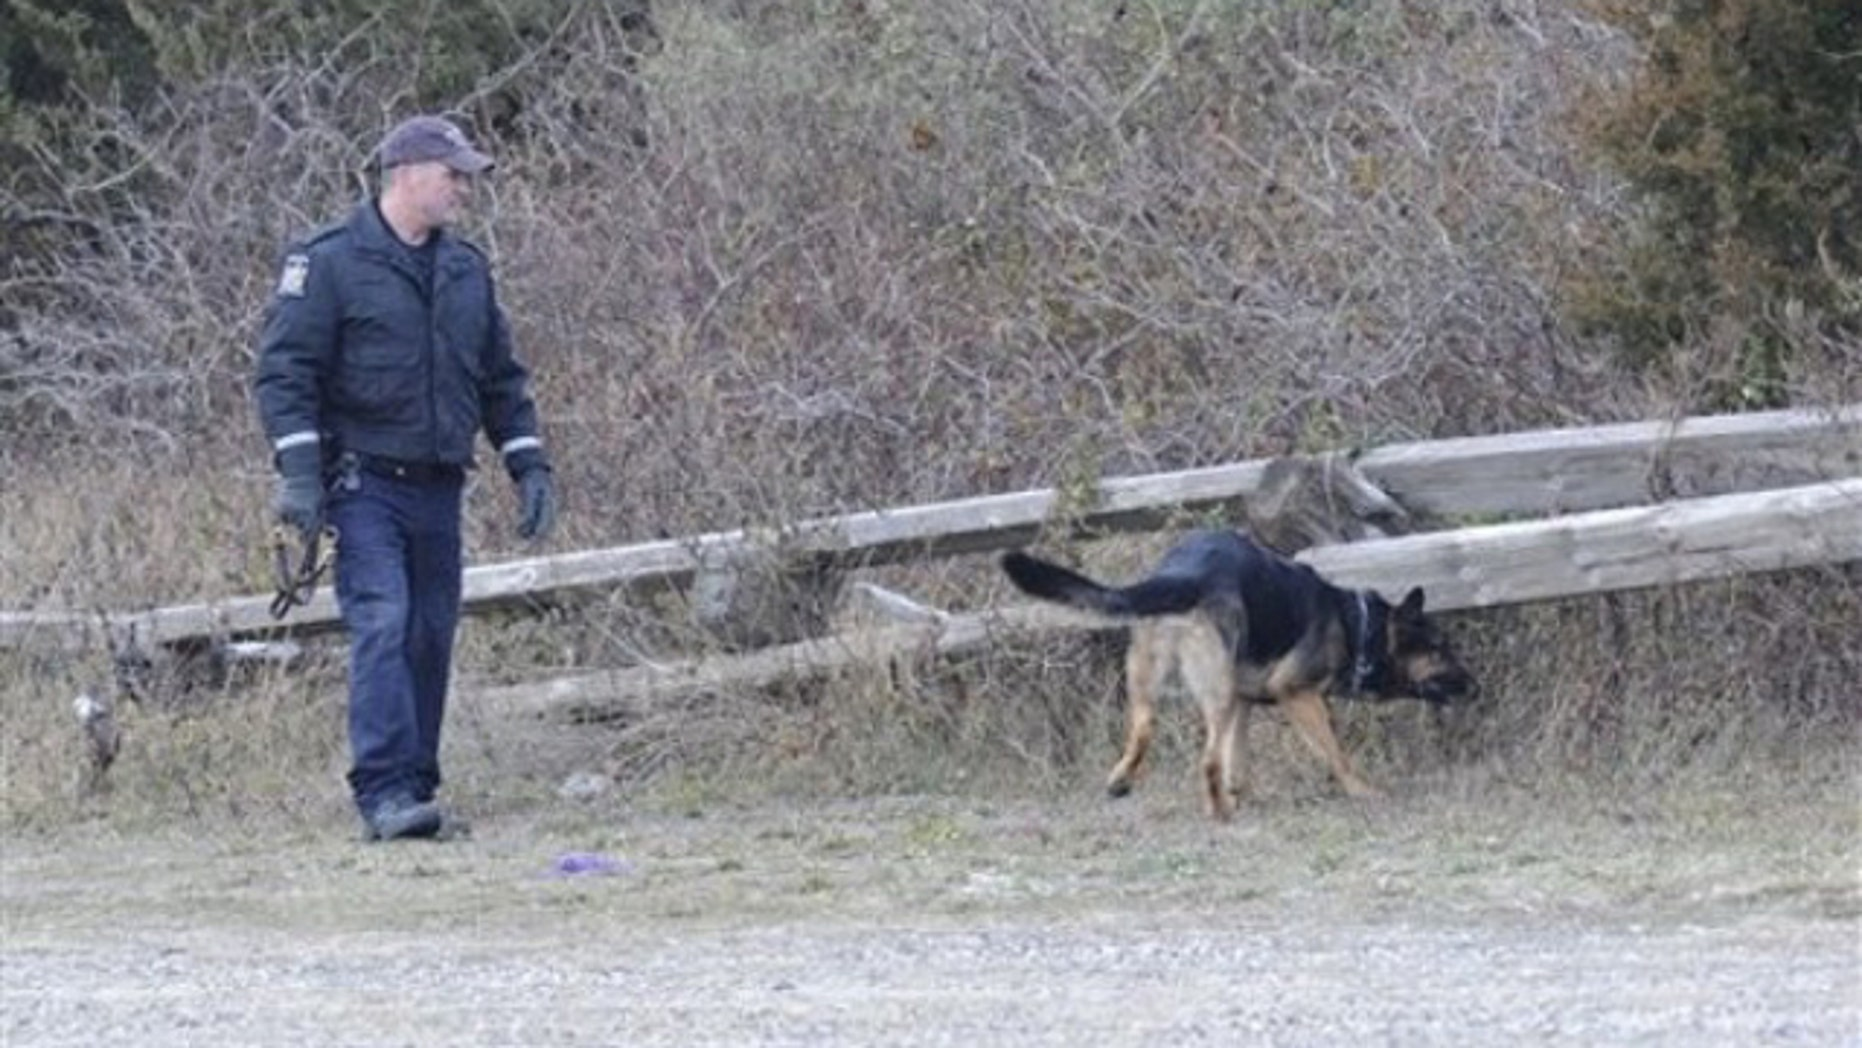 K-9 unit police use a cadaver dog to search an area in Oak Beach last month (AP).